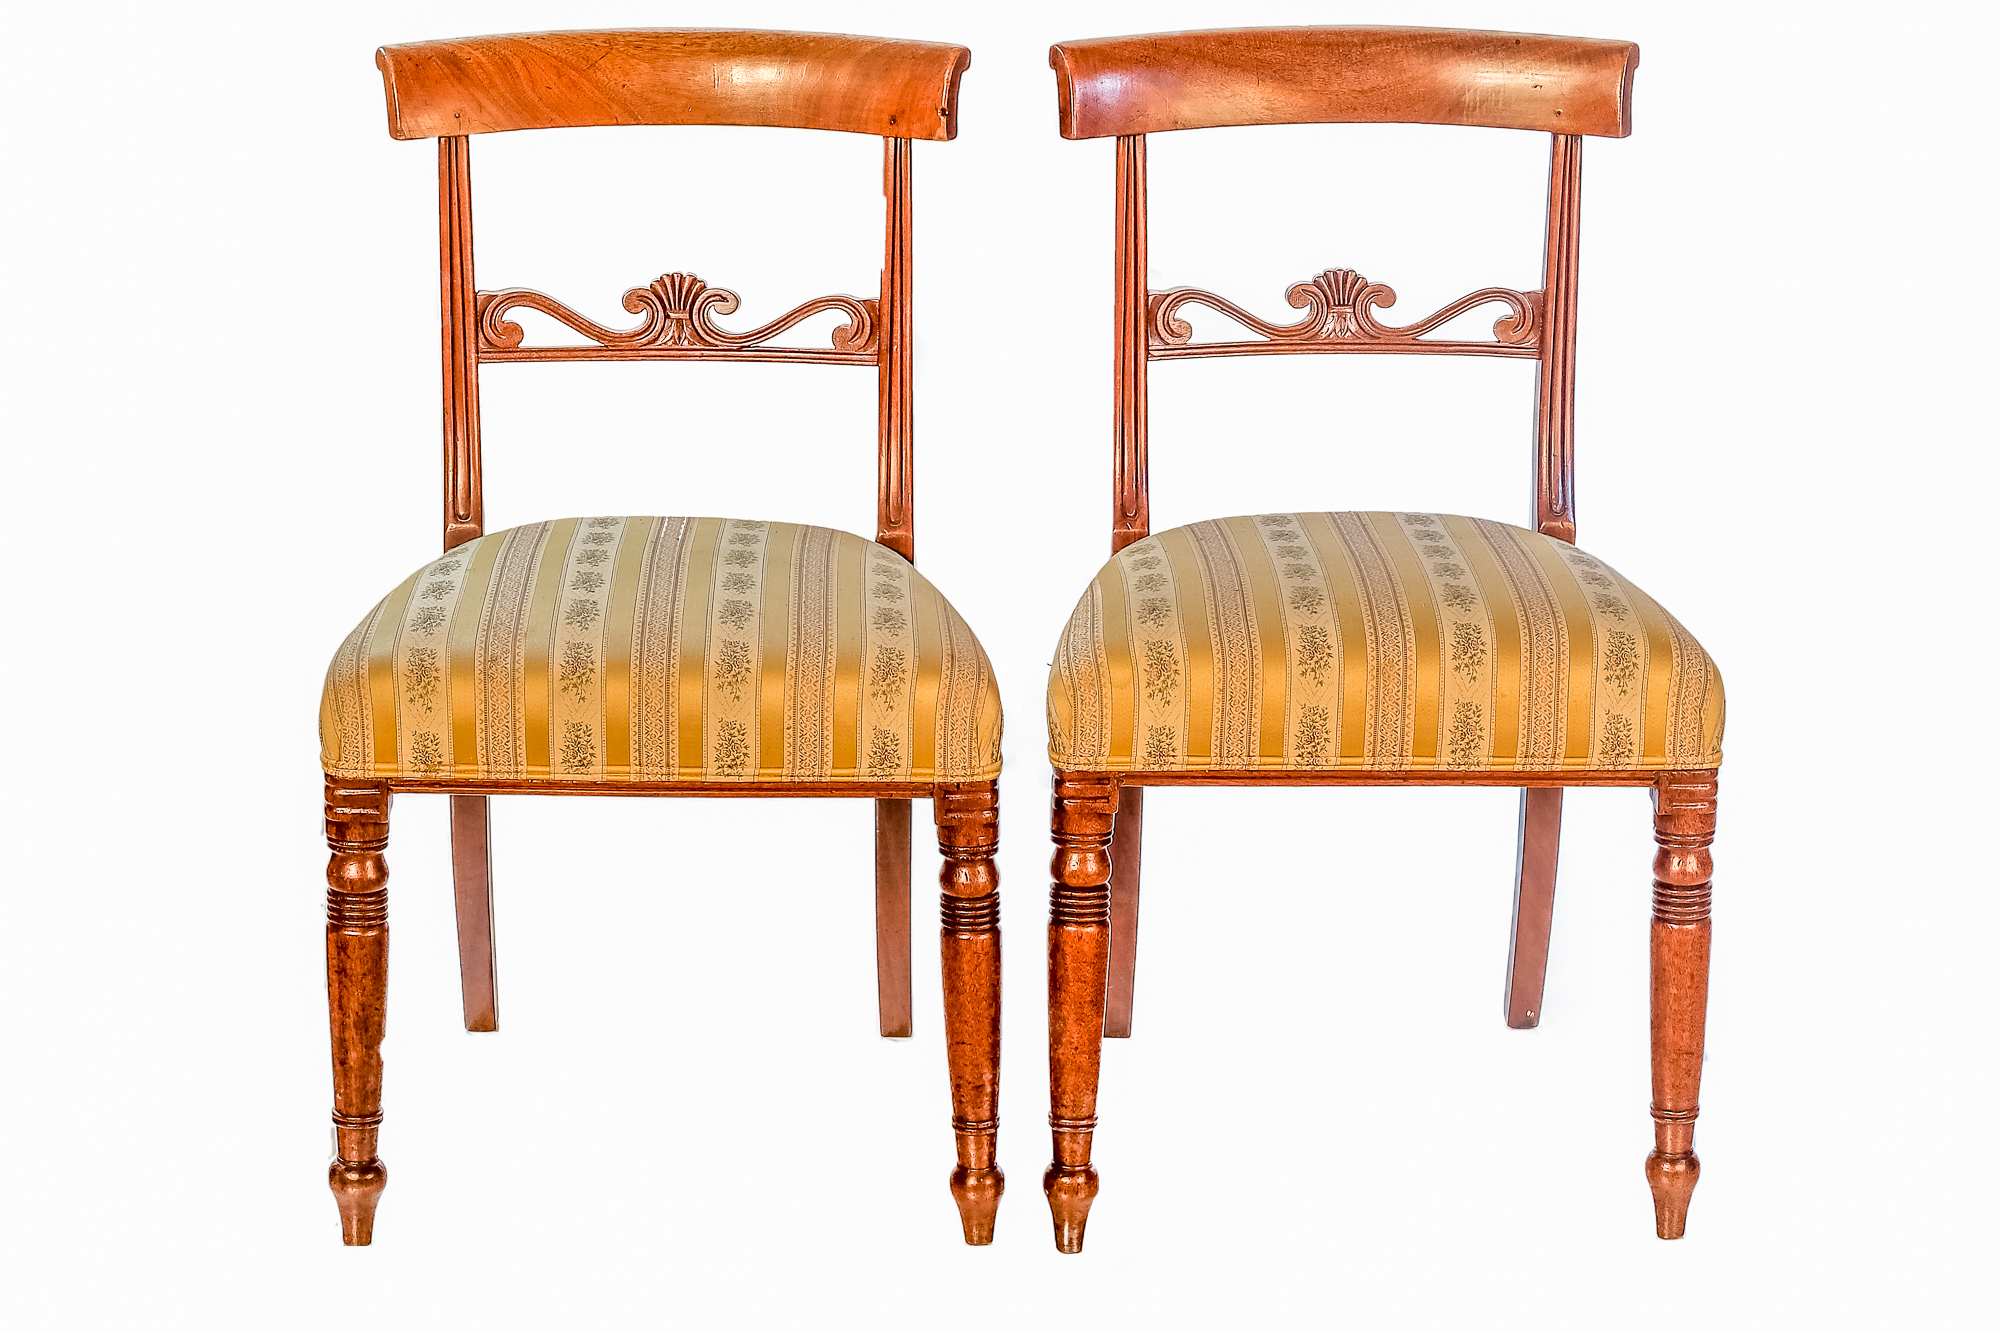 'Pair of Regency Period Carved Mahogany Upholstered Dining Chairs Circa 1820'